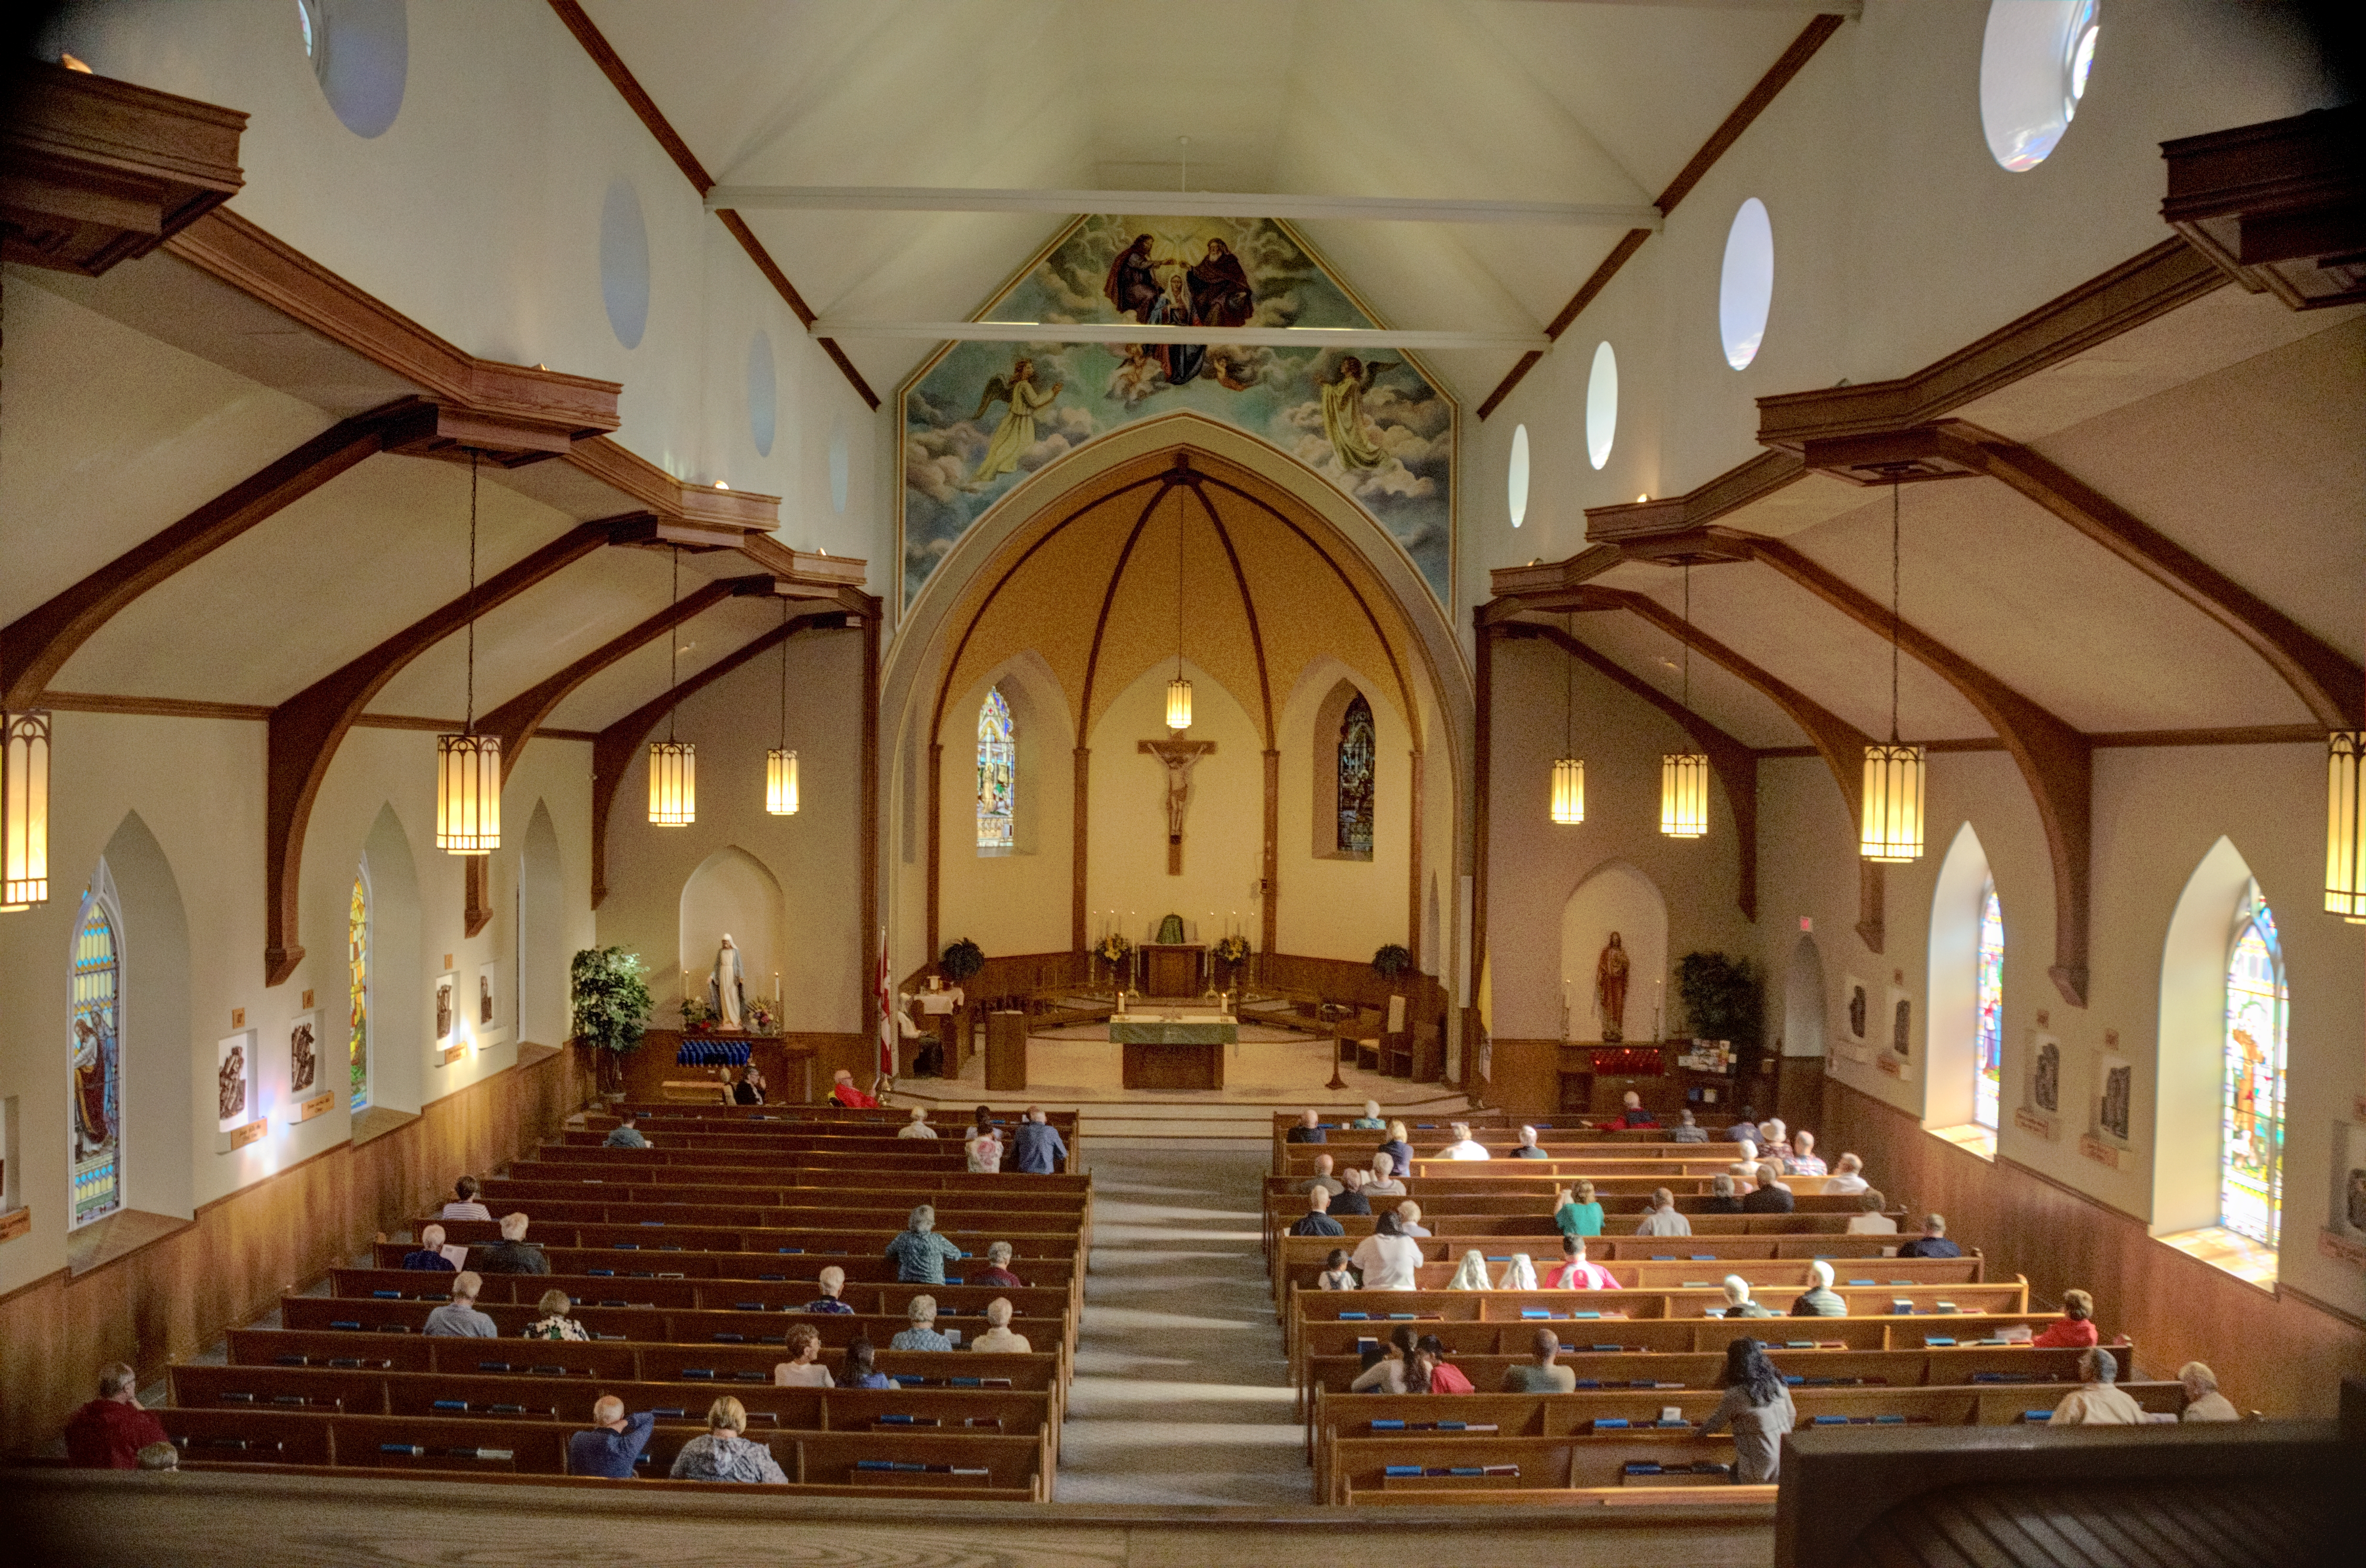 Image of St. Margaret's during Mass from the choir loft